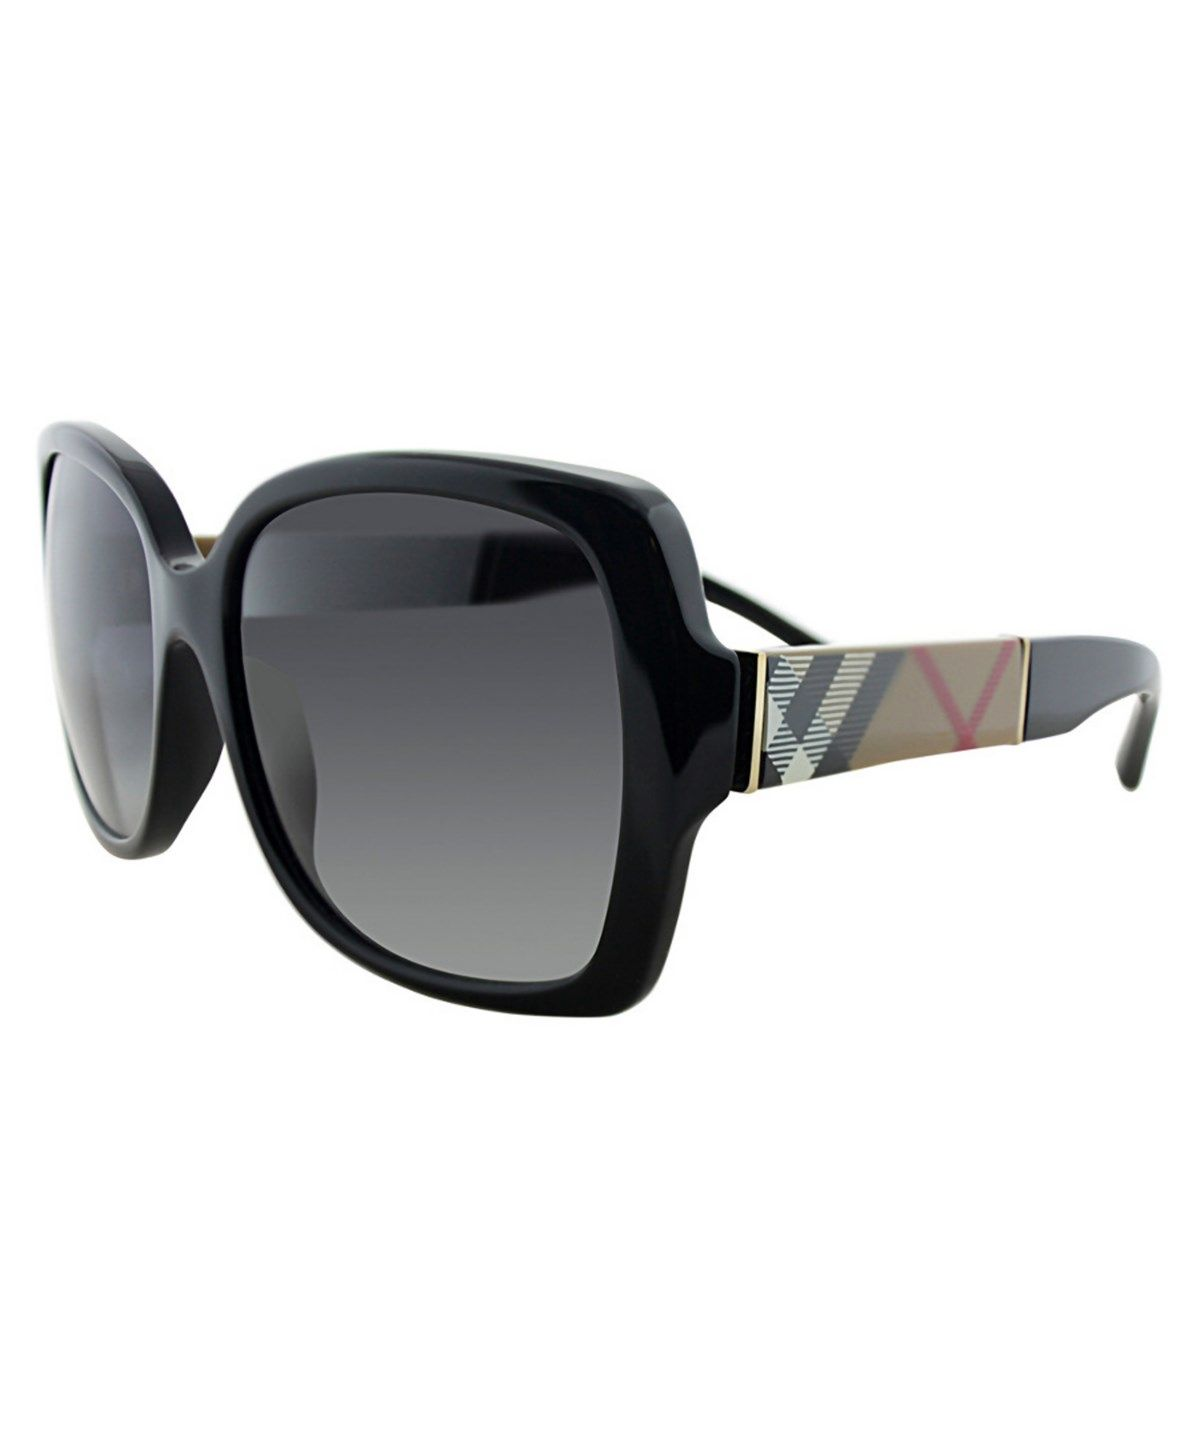 7220d7d638ab BURBERRY BURBERRY WOMEN S BE4160 SUNGLASSES .  burberry  sunglasses ...